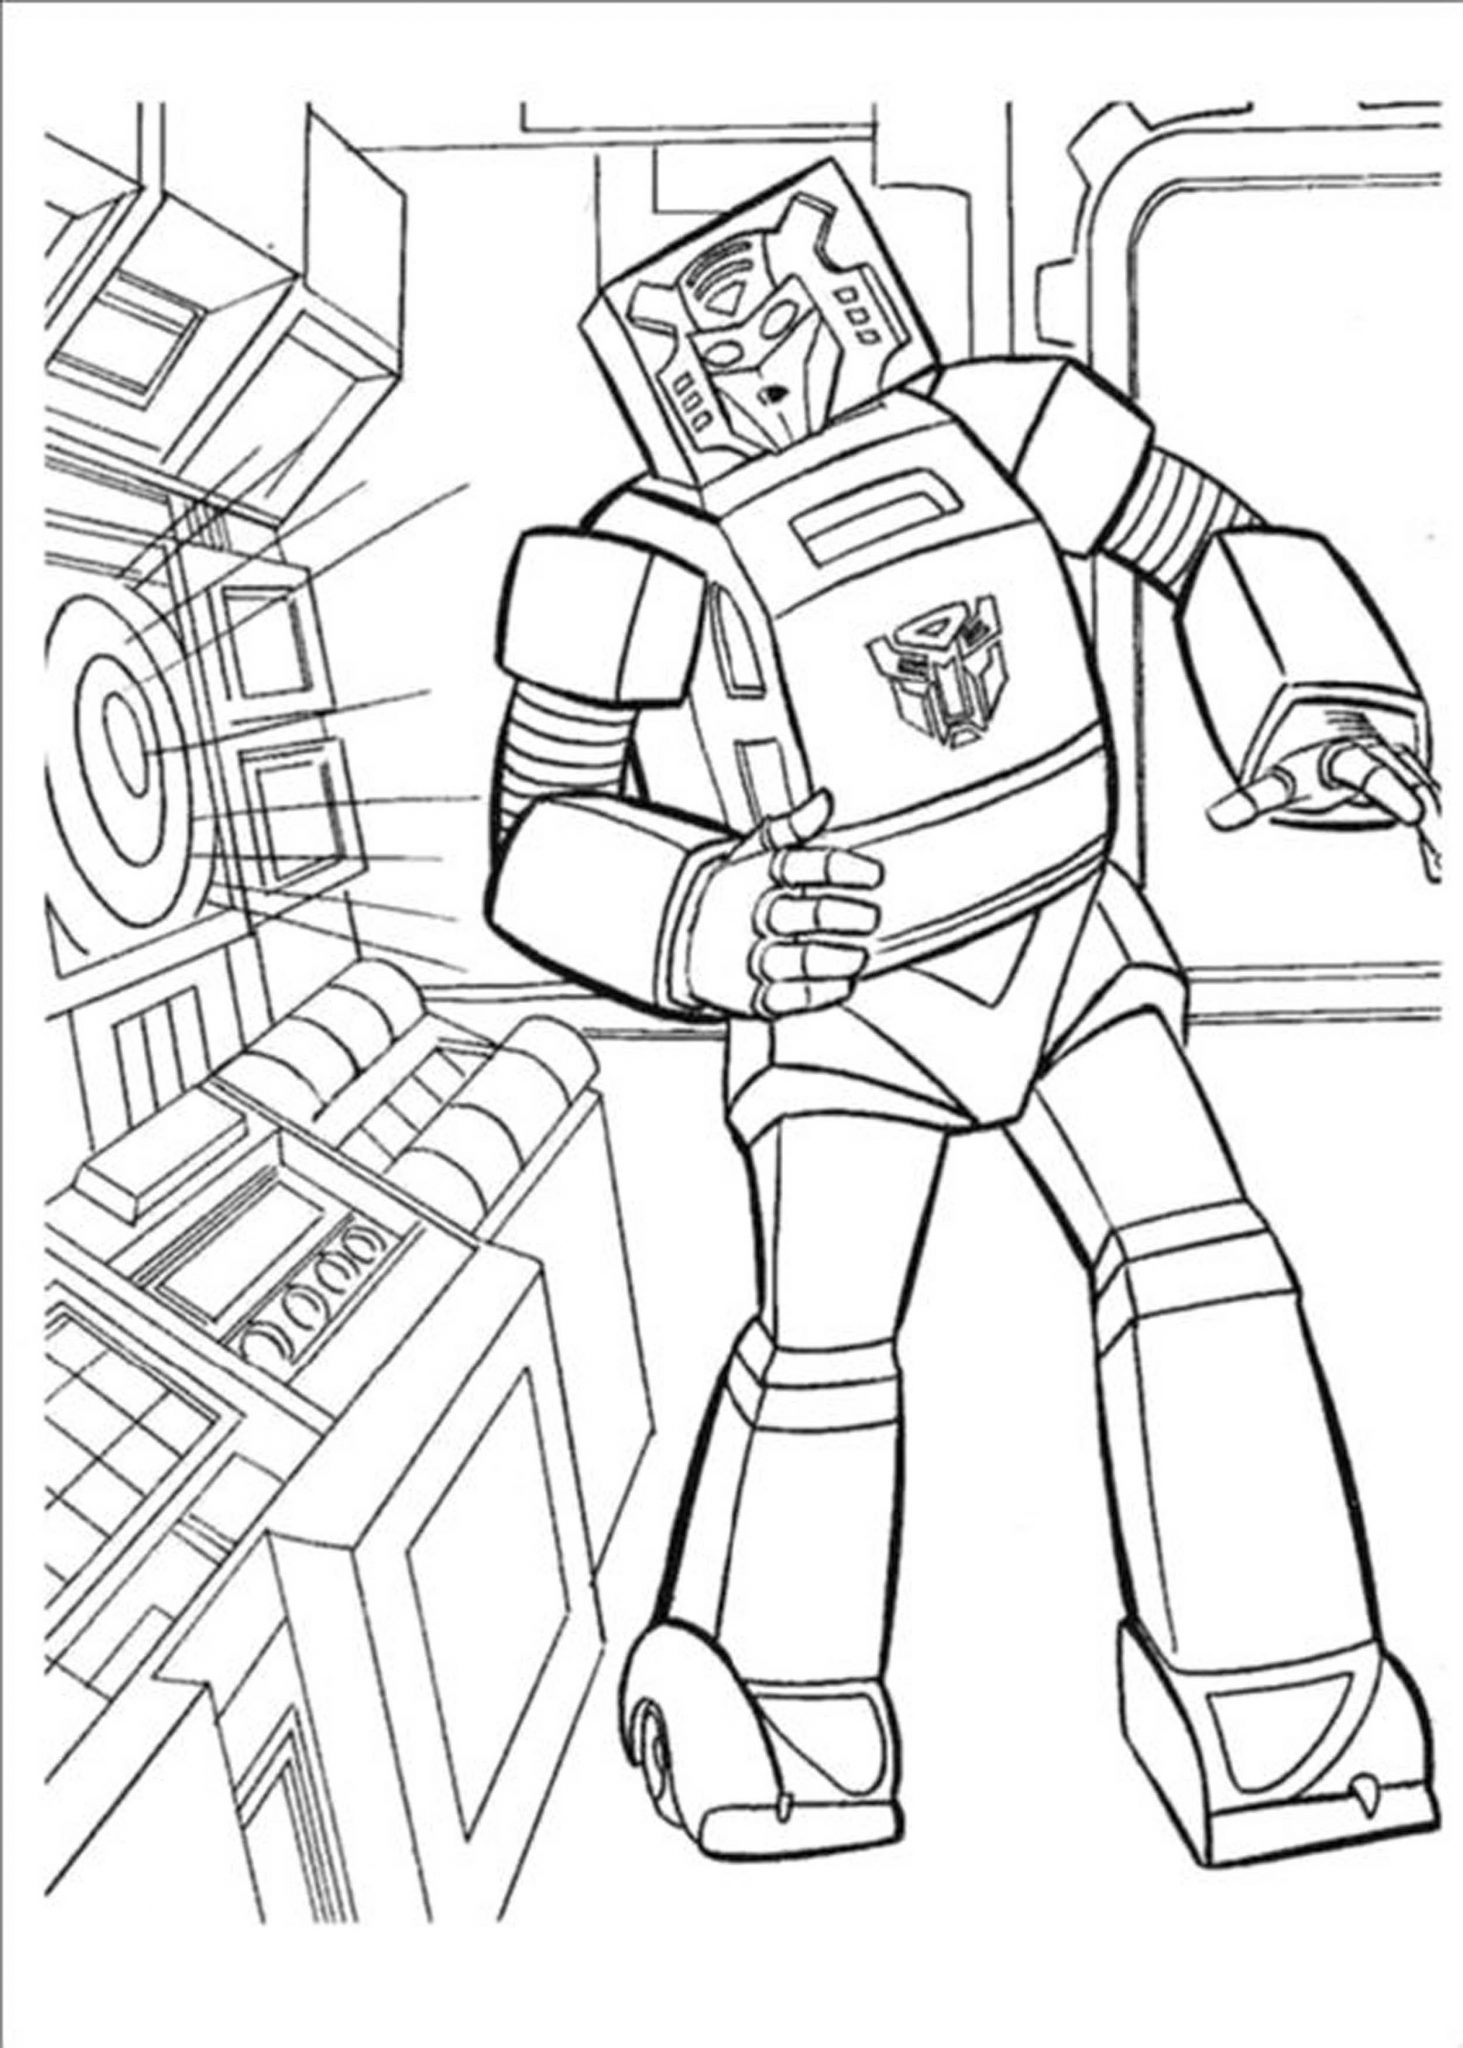 transformer colouring in free printable transformers coloring pages for kids transformer in colouring